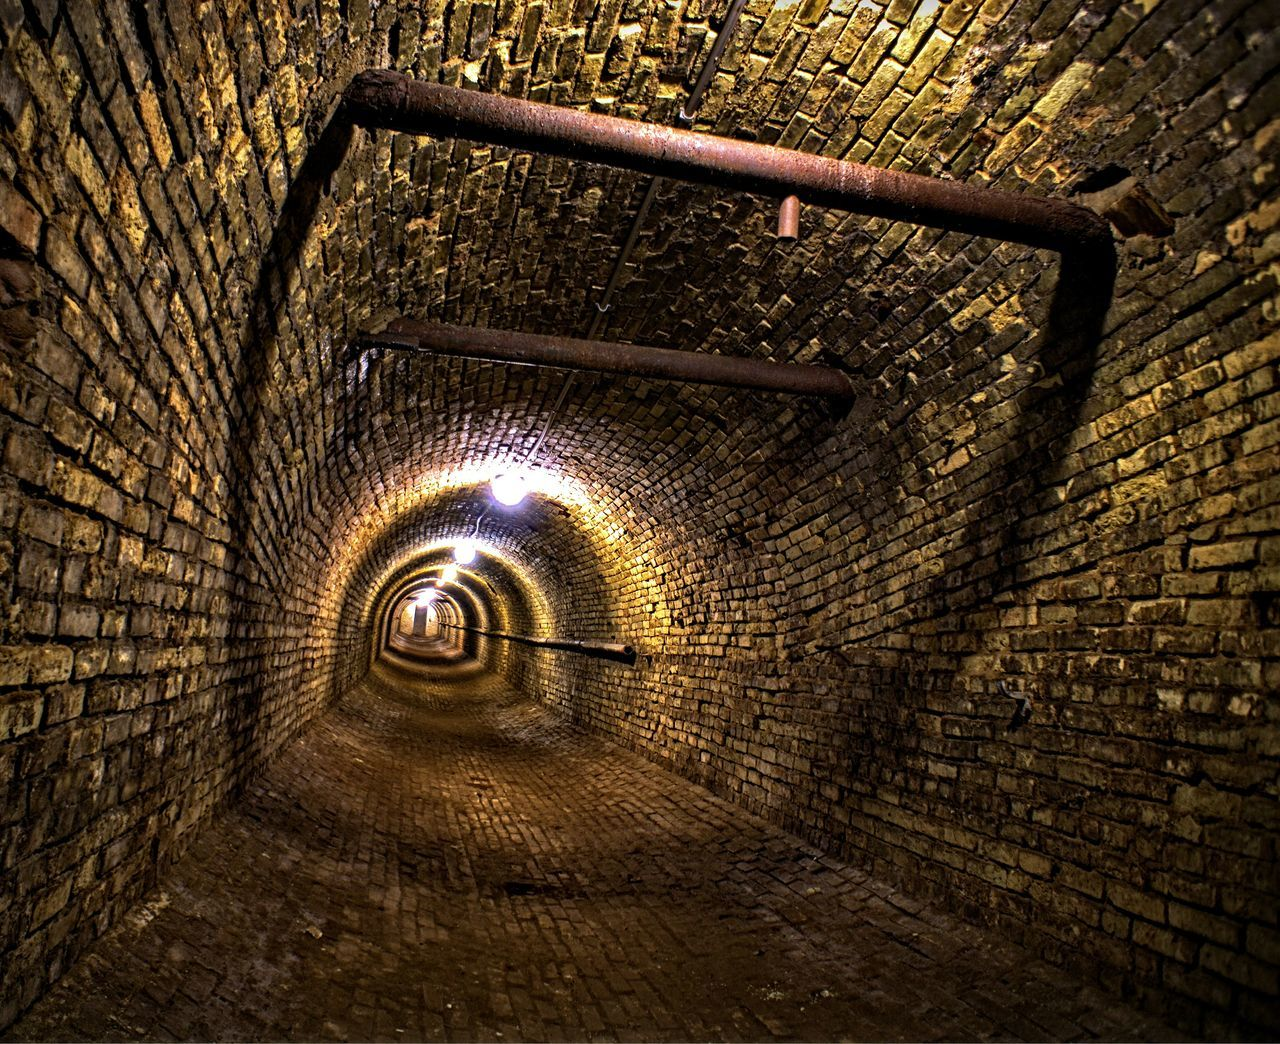 Narrow Pathway In Tunnel Along Walls